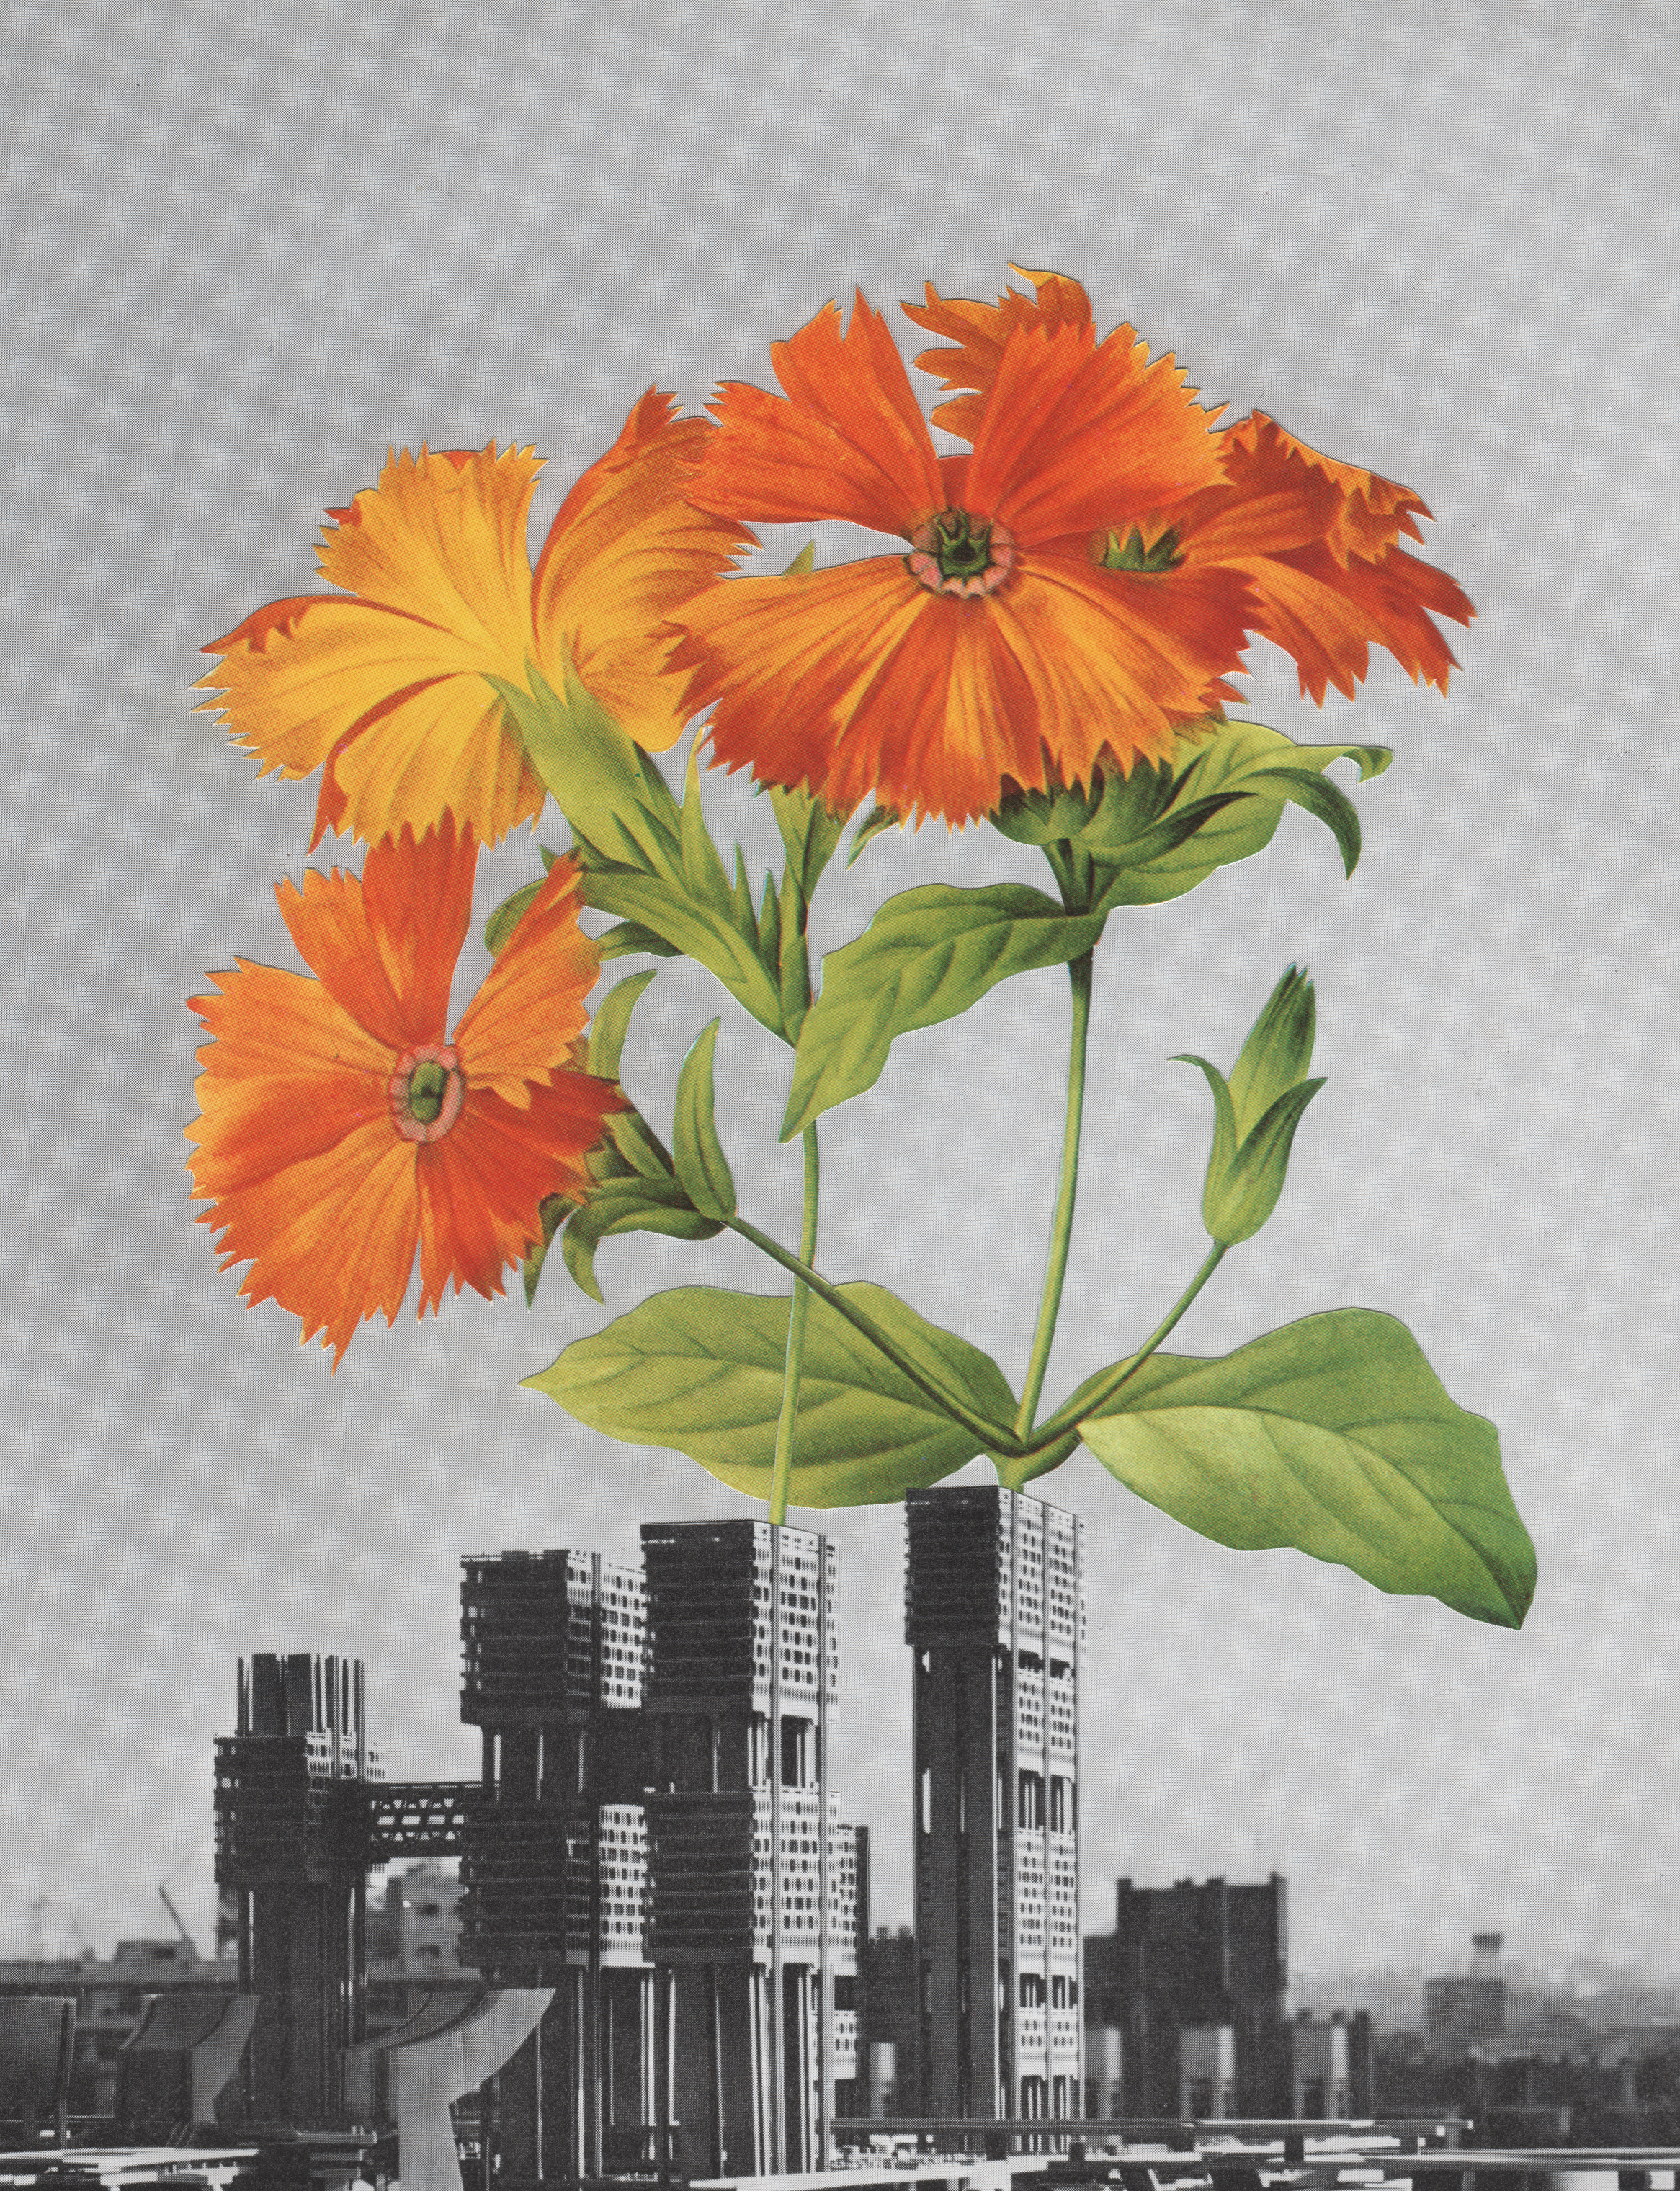 In love with this luscious collage from Garrett Blad, proof that bright orange beauty can bloom even in the heart of a capitalist cityscape.